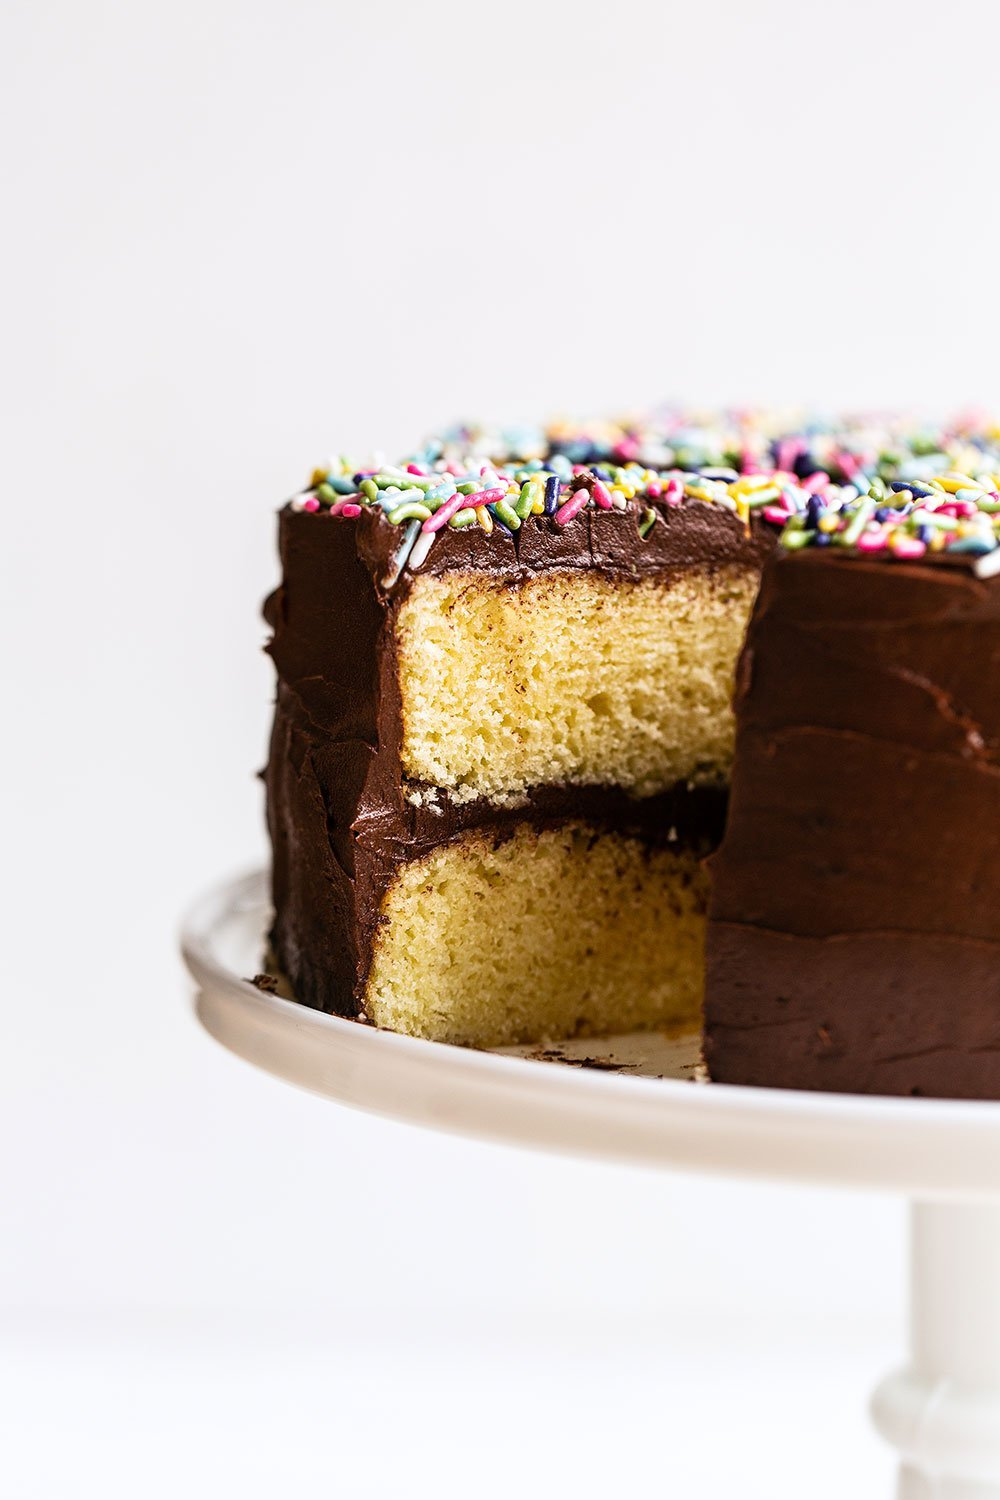 Yellow Layer Cake with Chocolate Frosting on a cake stand